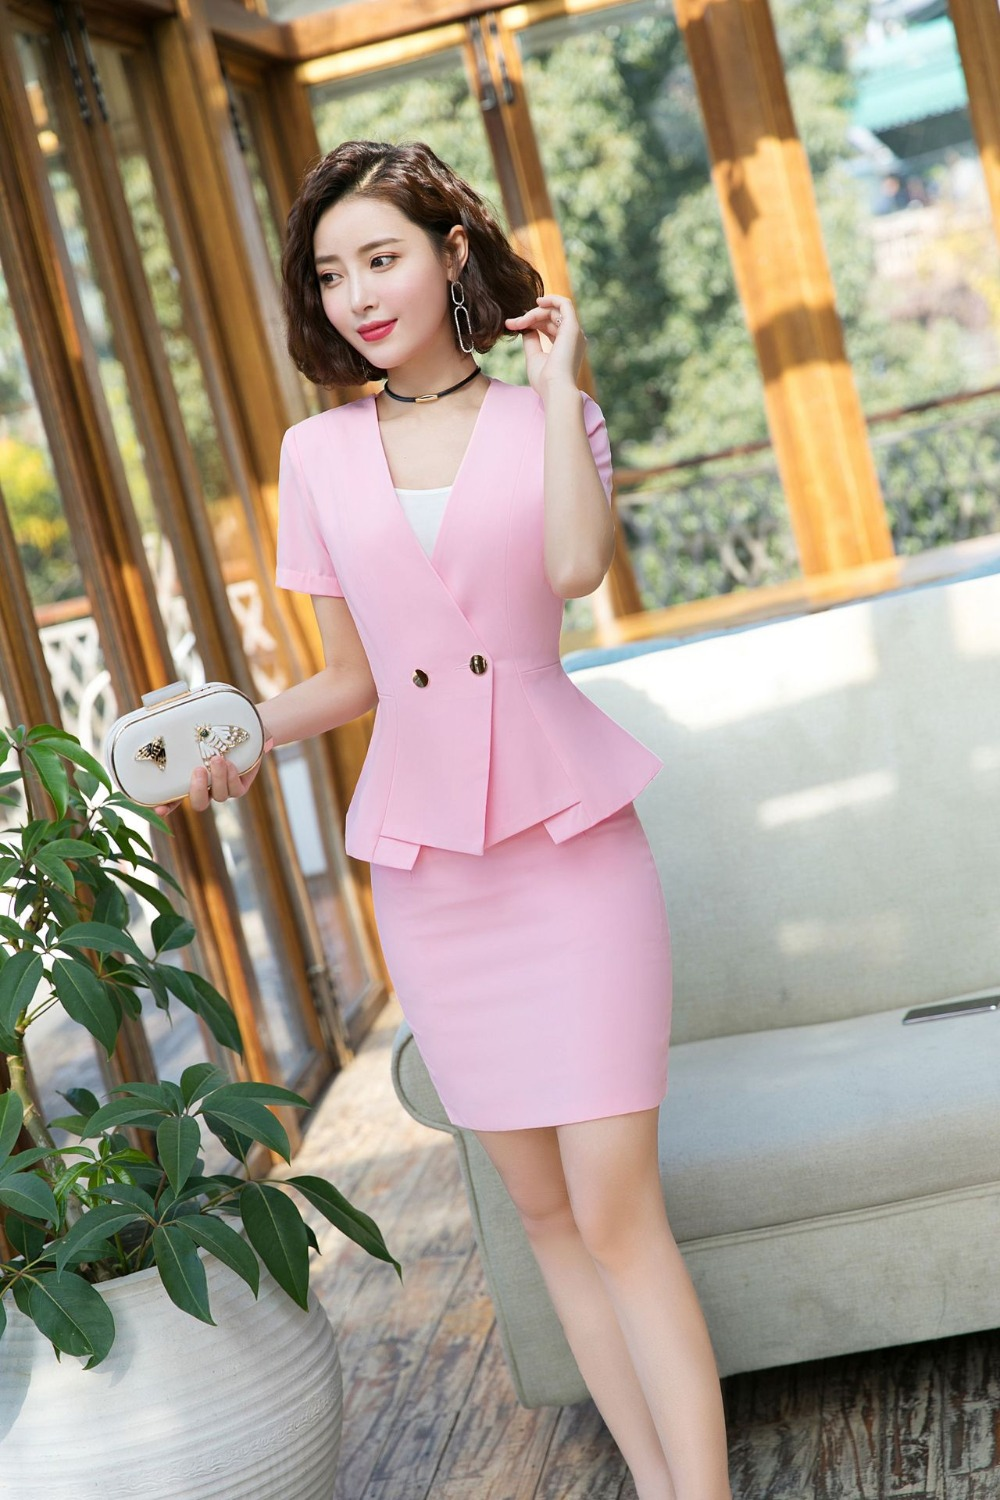 IZICFLY Summer Office Clothes 2019 Formal Ladies Business Uniform Pink Elegant Mini Women Skirt Suits And Jacket Formal Work 4XL